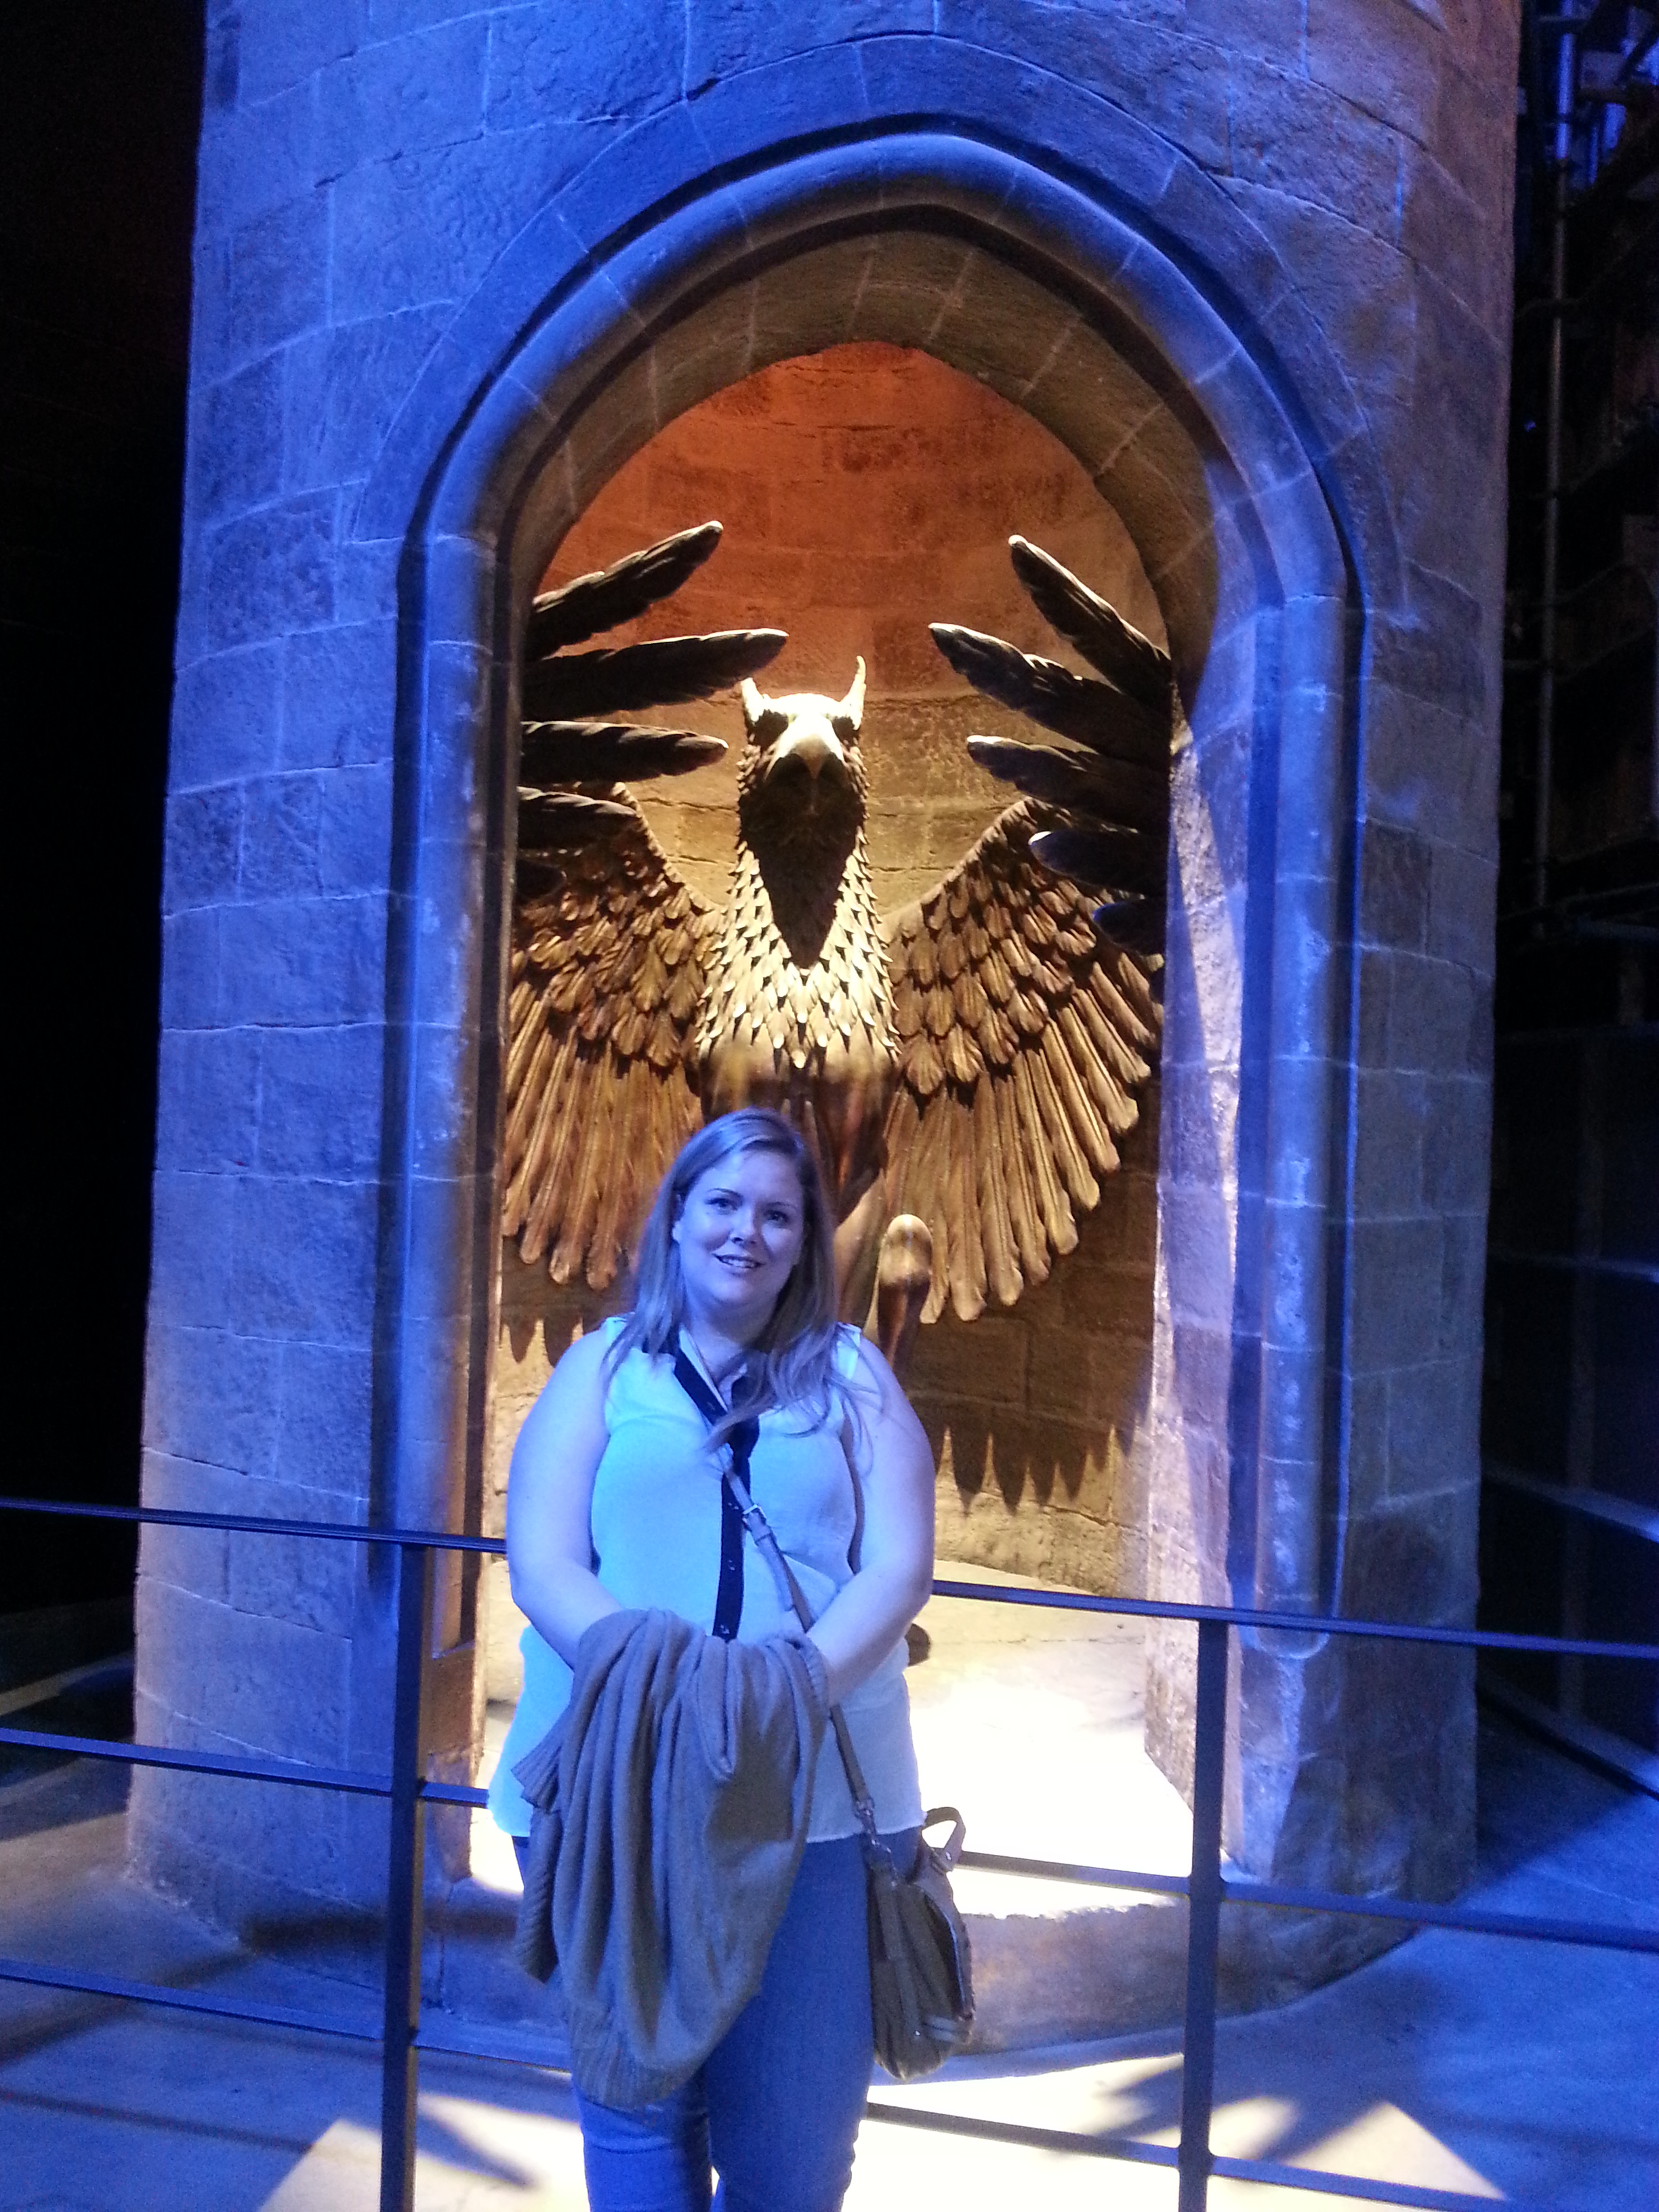 The spiral staircase leading to Dumbledore's office.